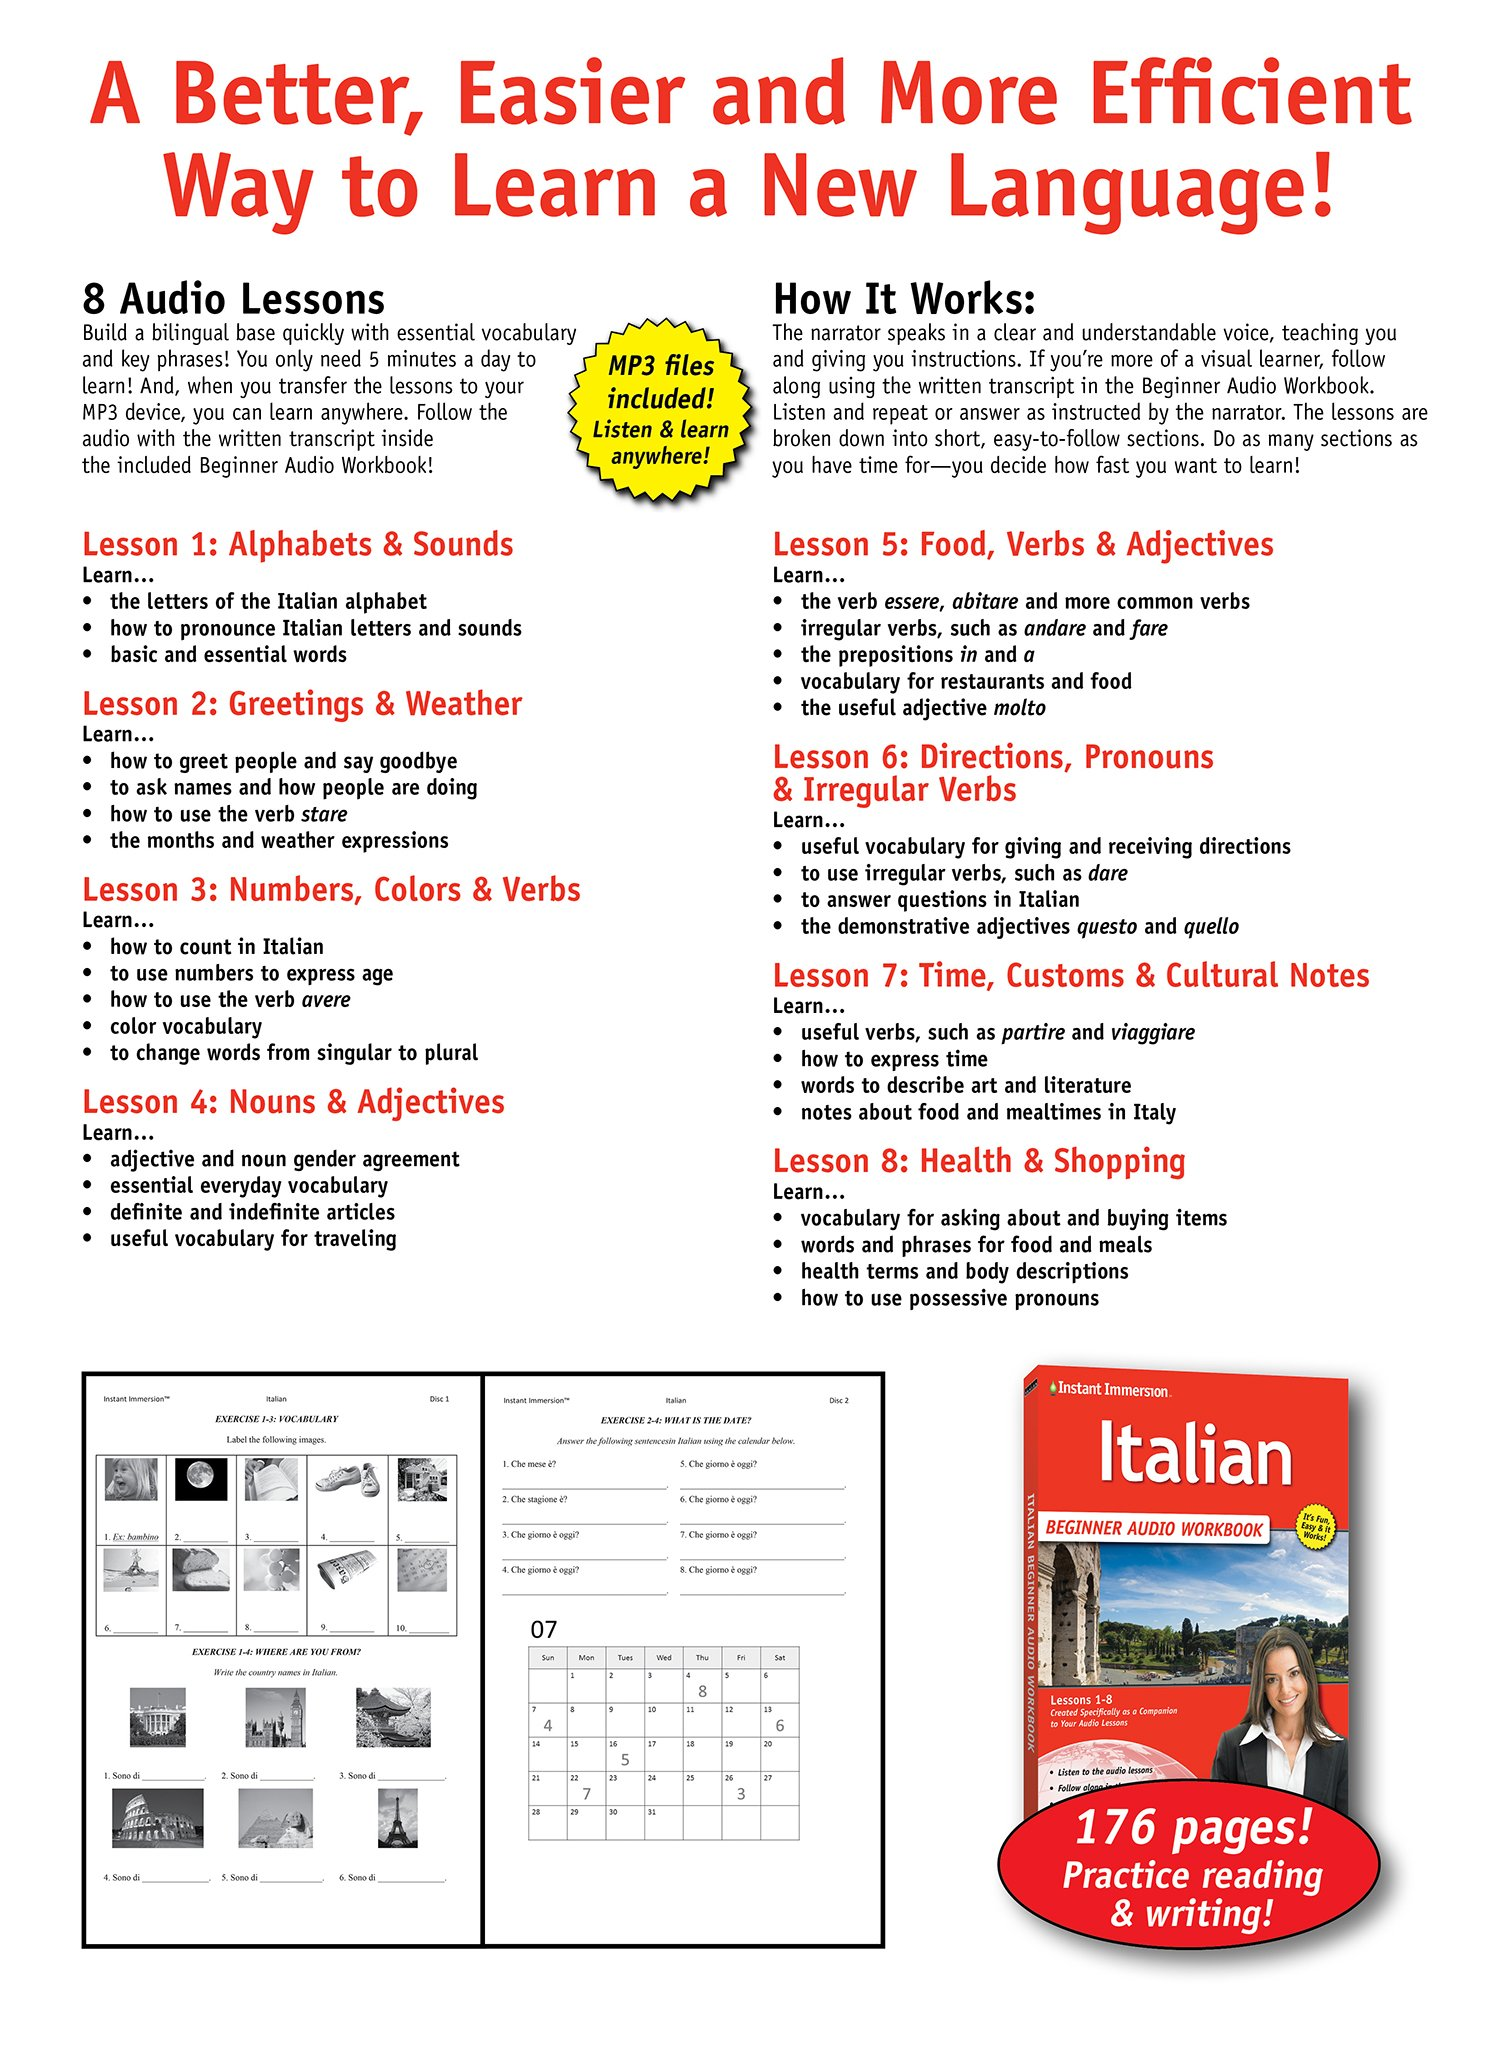 Learn italian beginner audio language course by instant immersion learn italian beginner audio language course by instant immersion 2016 version italian and english edition instant immersion 9781618945440 kristyandbryce Images